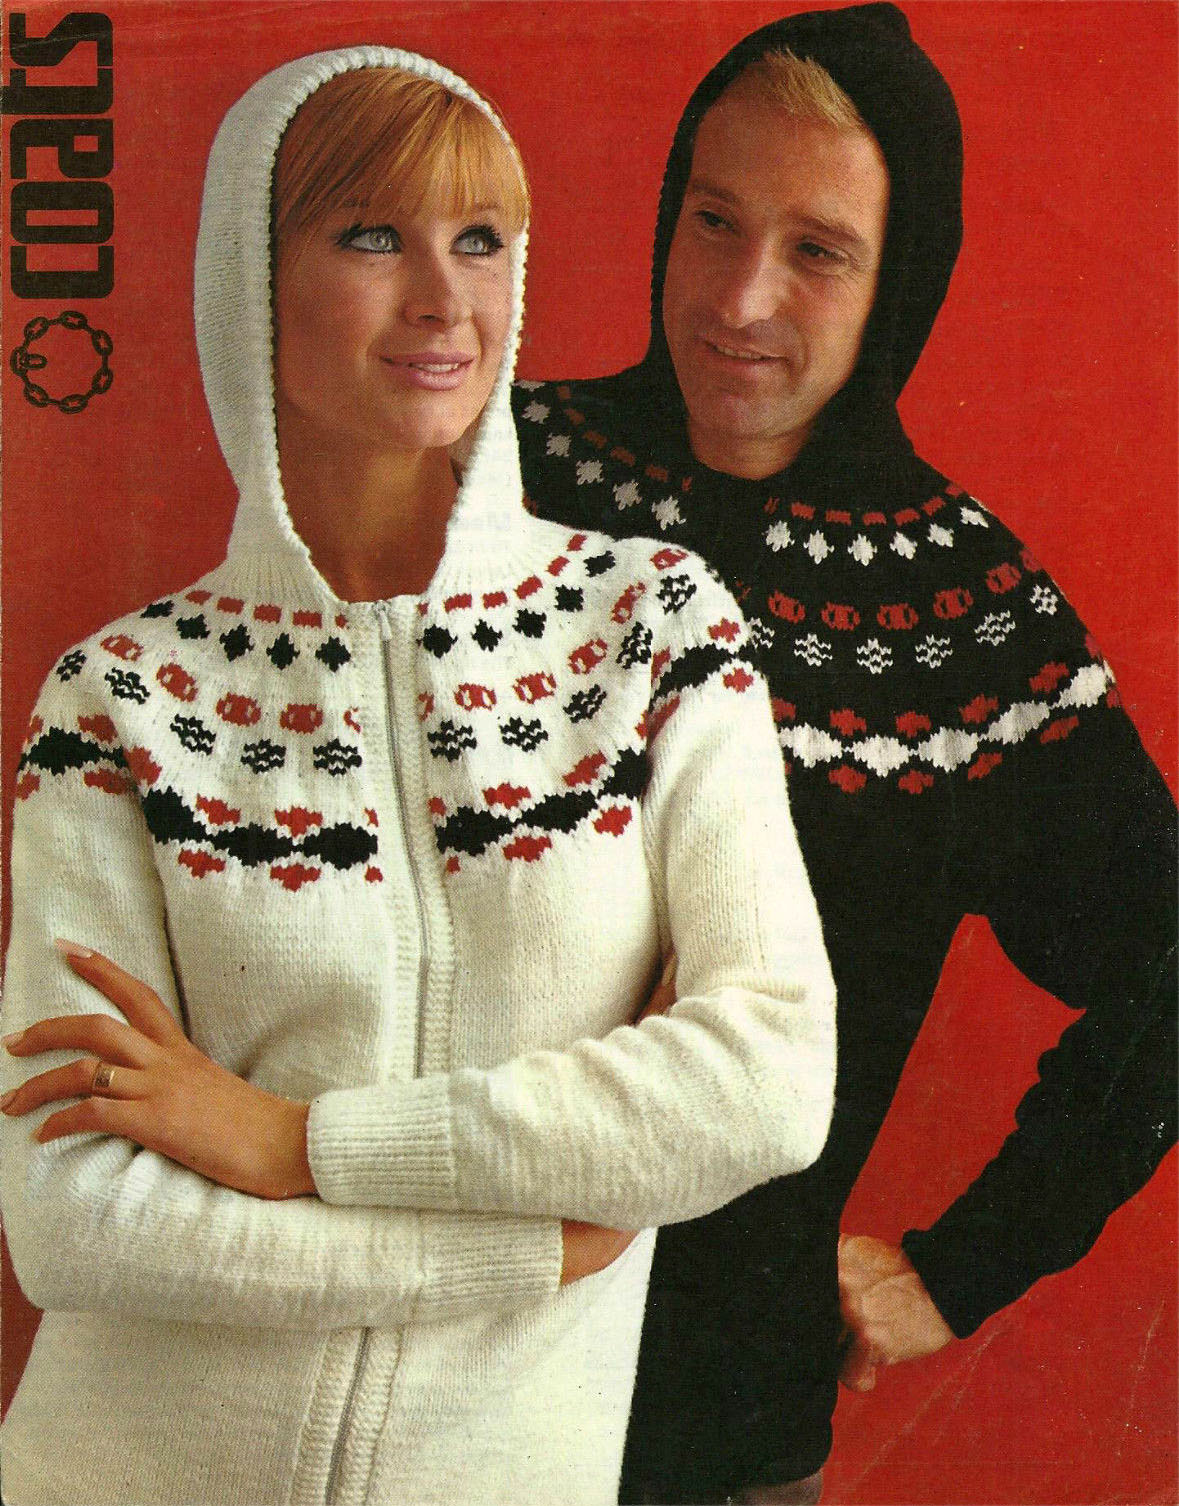 his-and-hers-sweaters